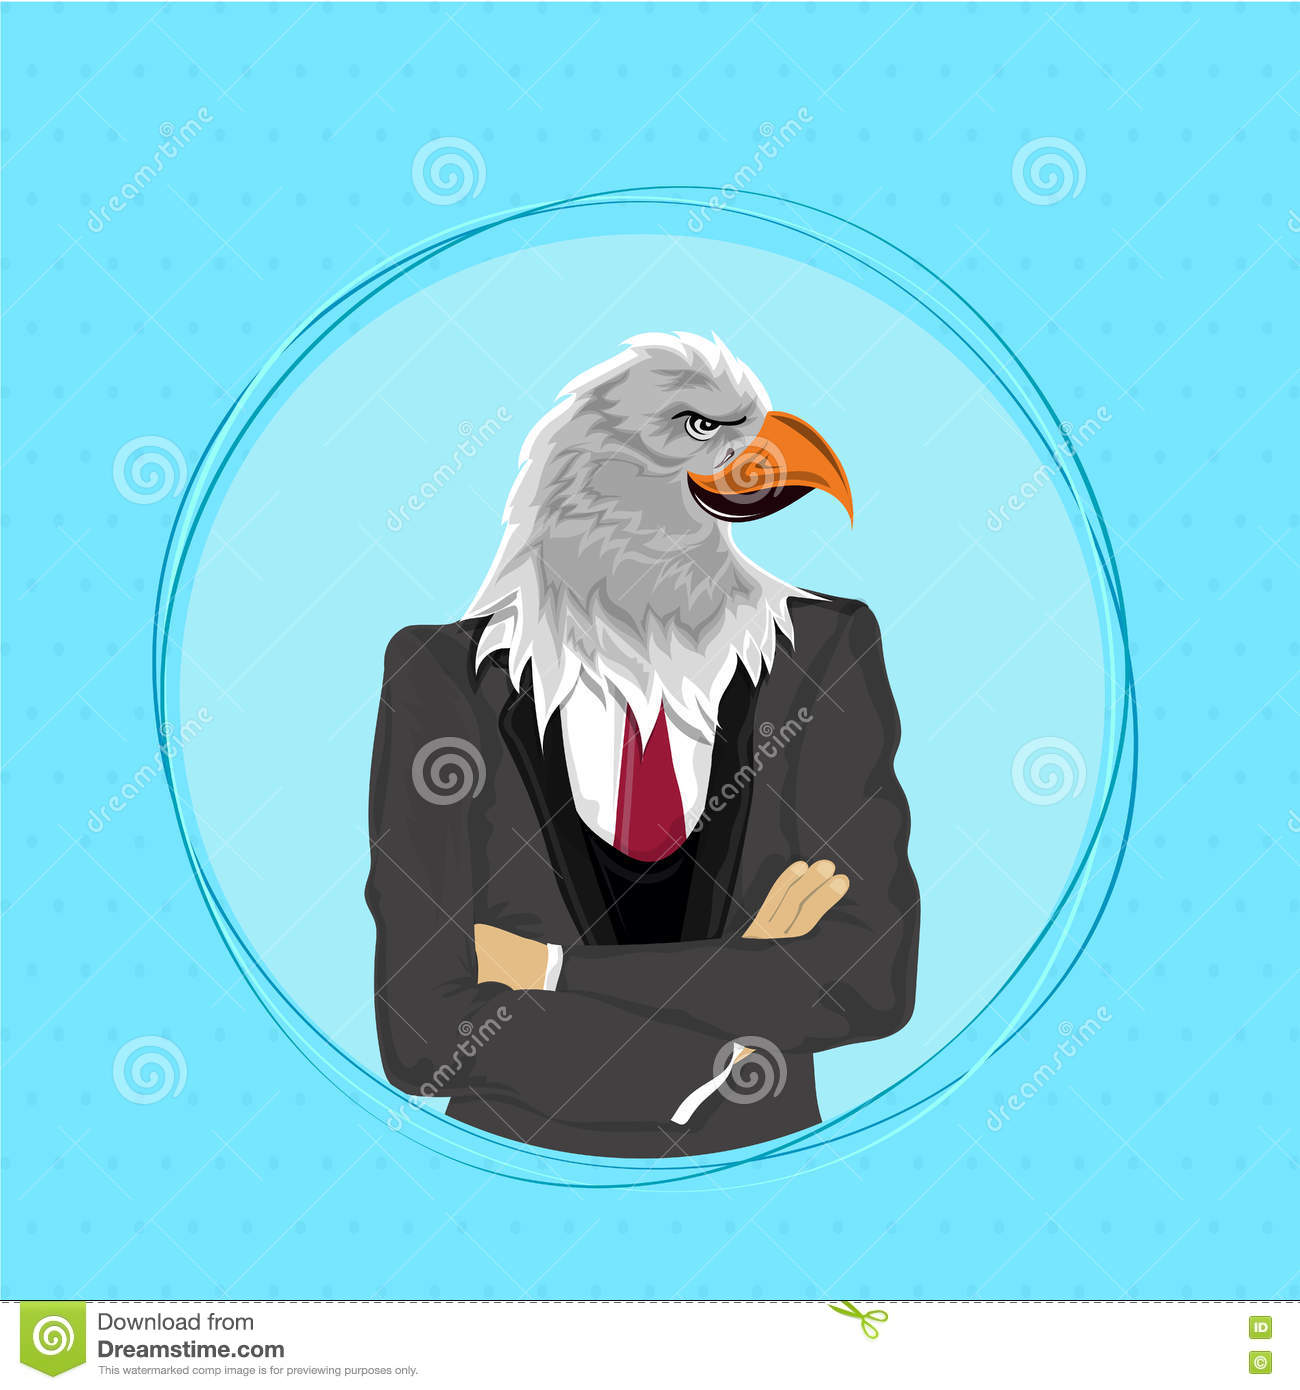 Eagle Bird In Suit, Anthropomorphic Design. Stock Illustration ...